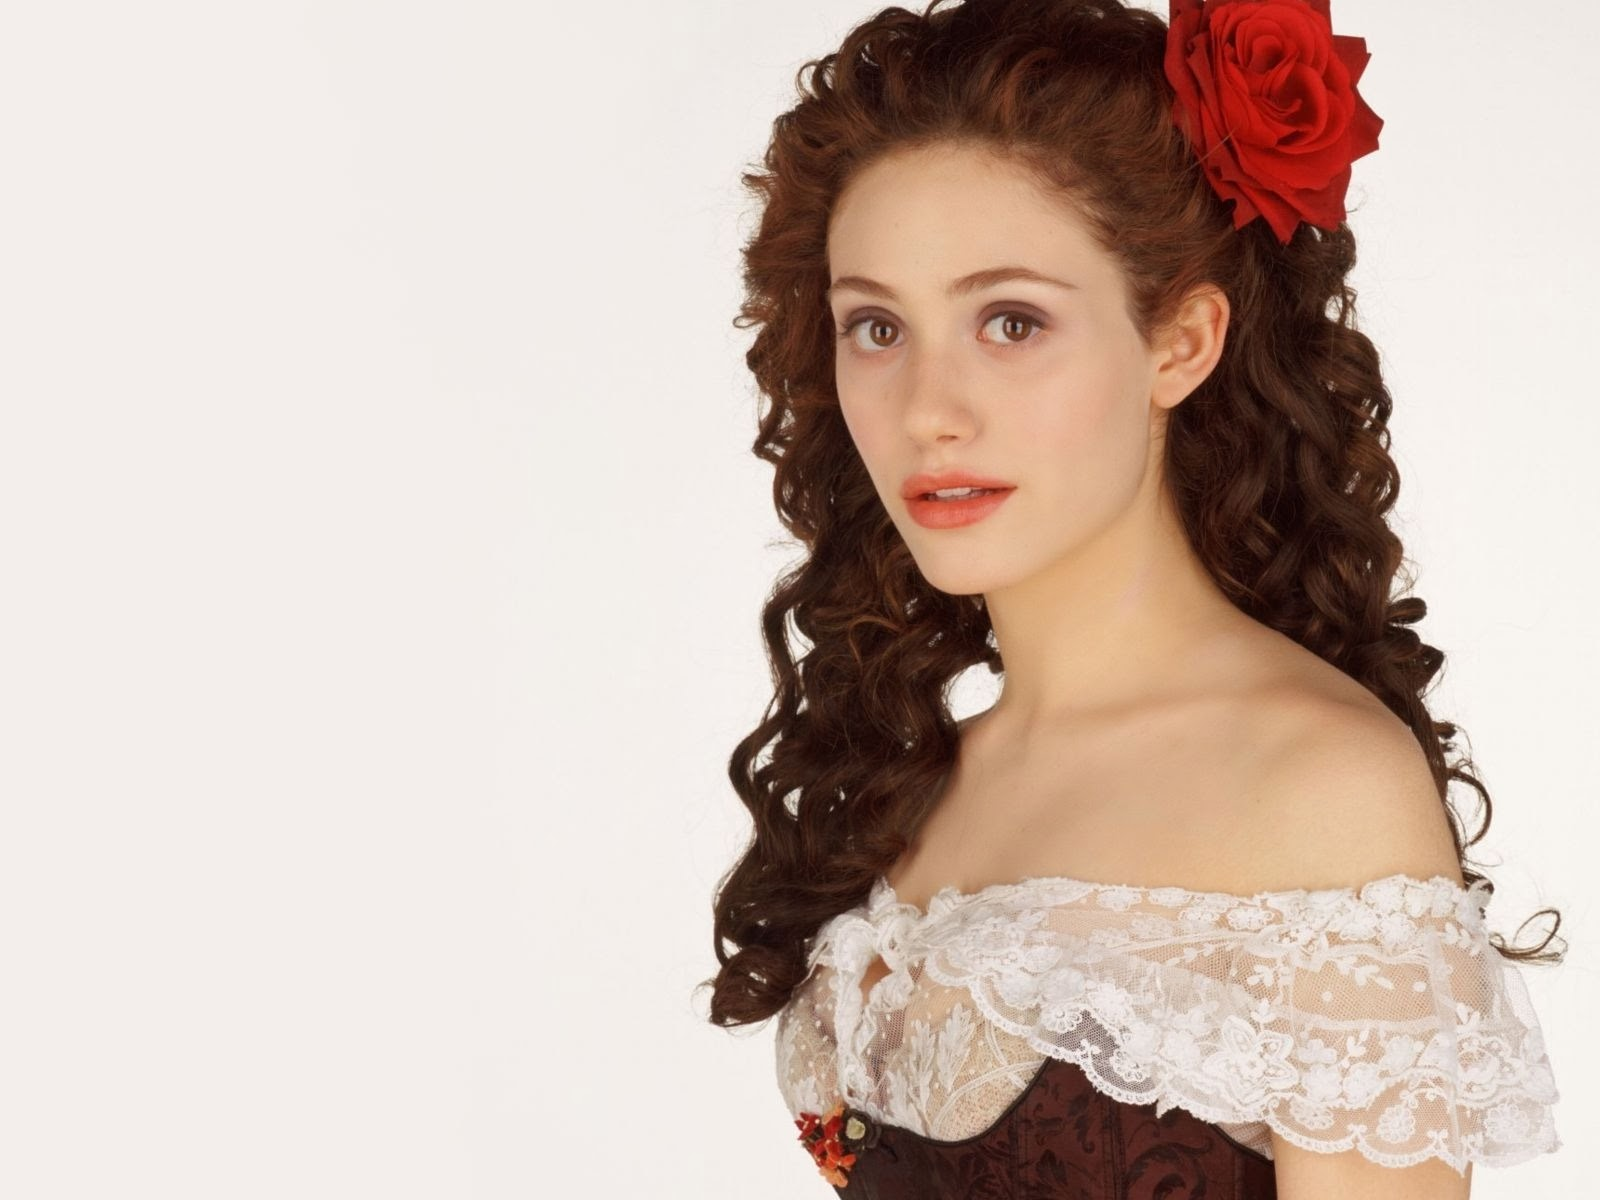 Emmy rossum wallpapers free download theroyalspeaker emmy rossum wallpapers free download voltagebd Gallery